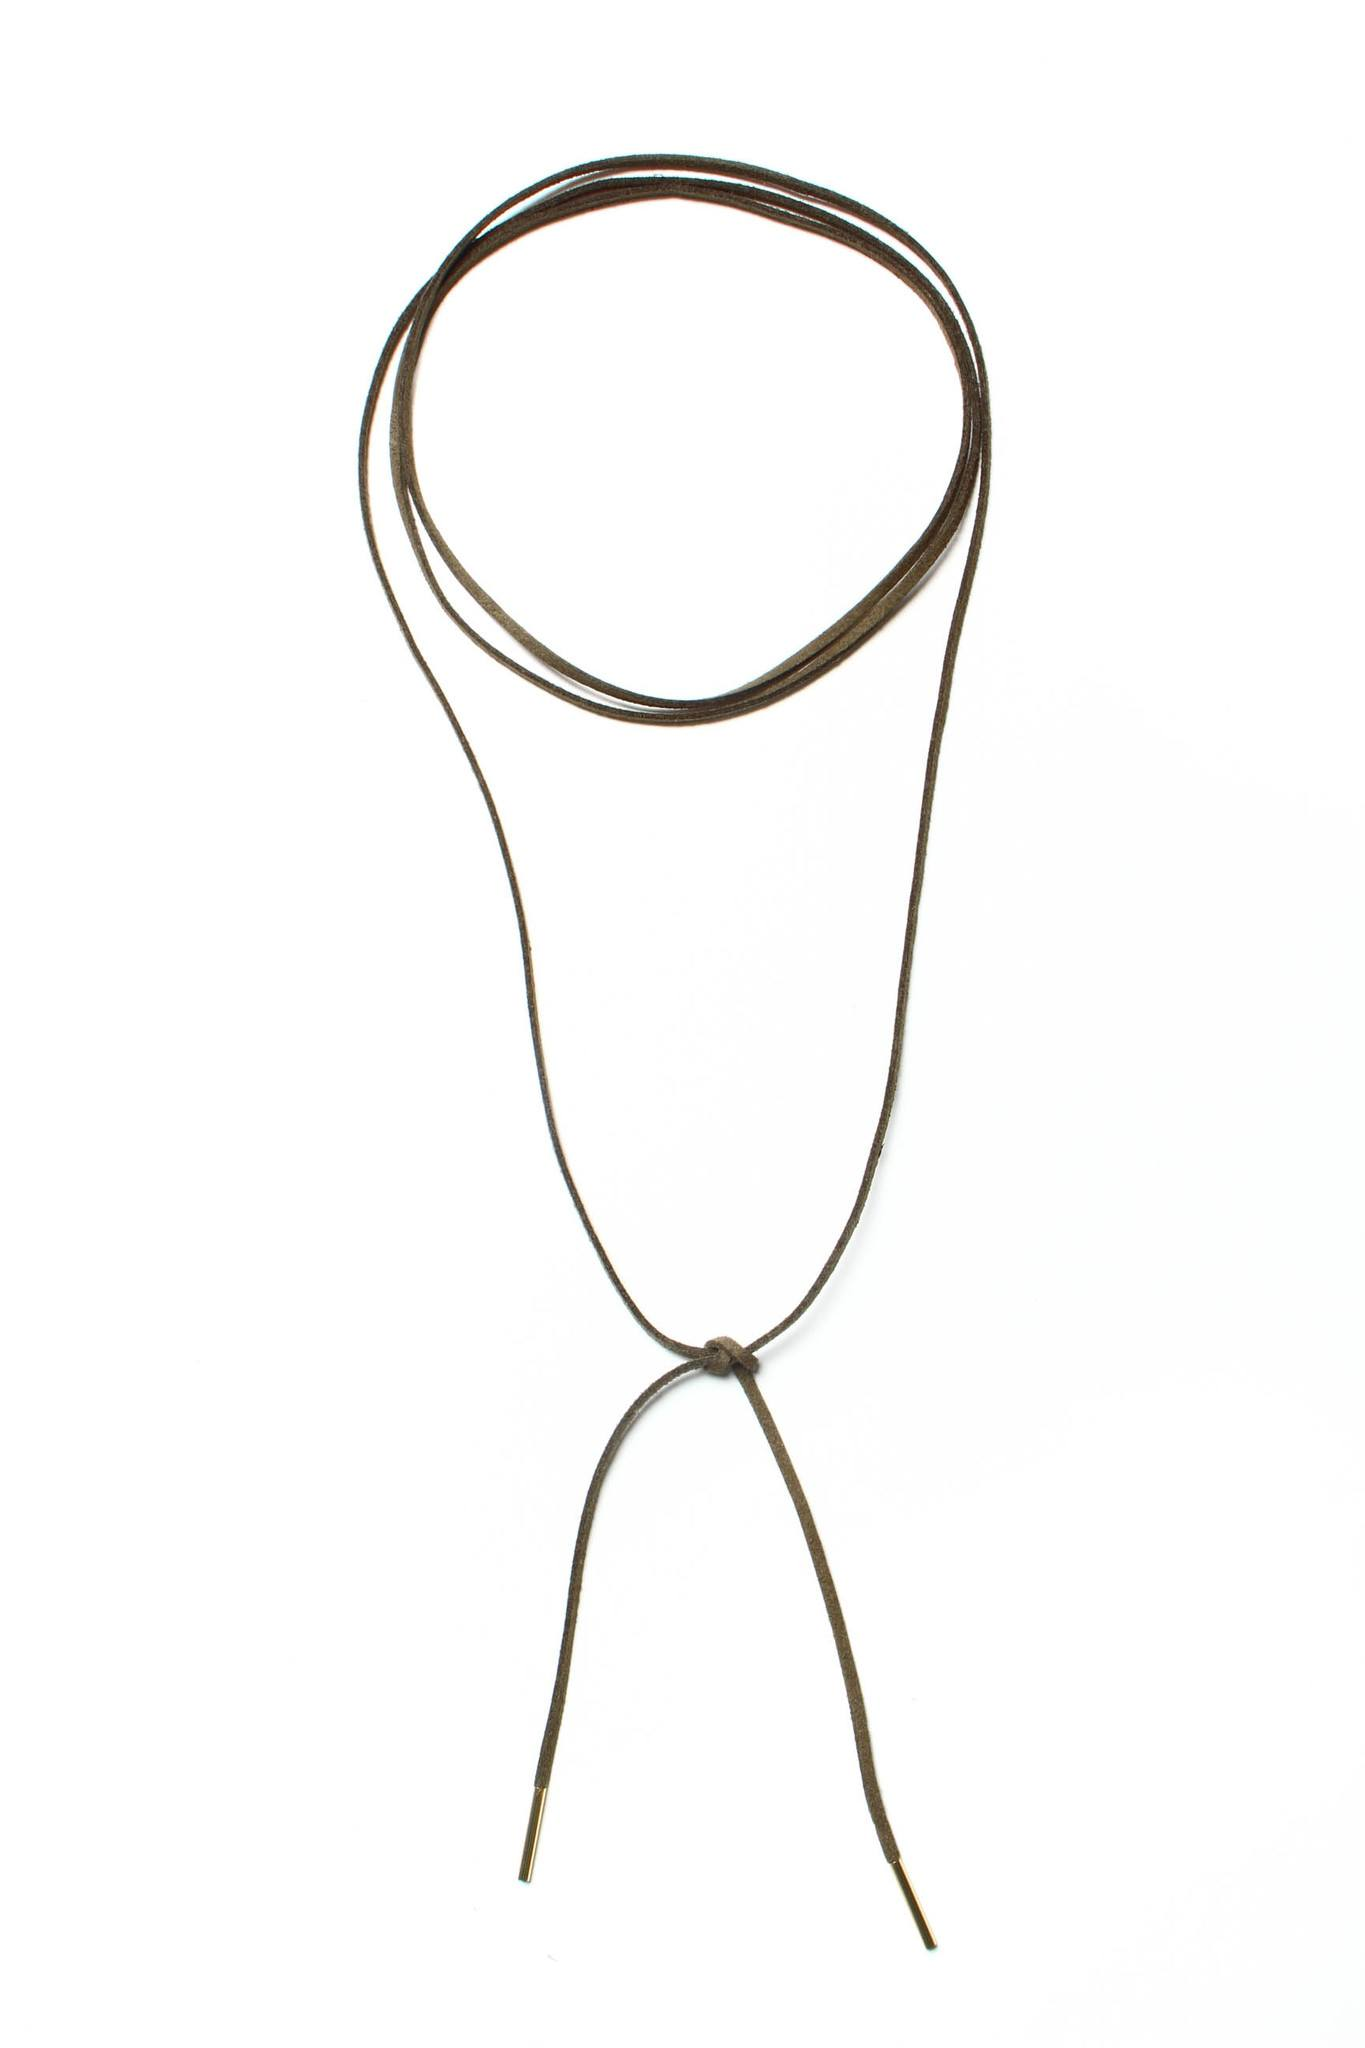 Maria Wrap Necklace - Olive